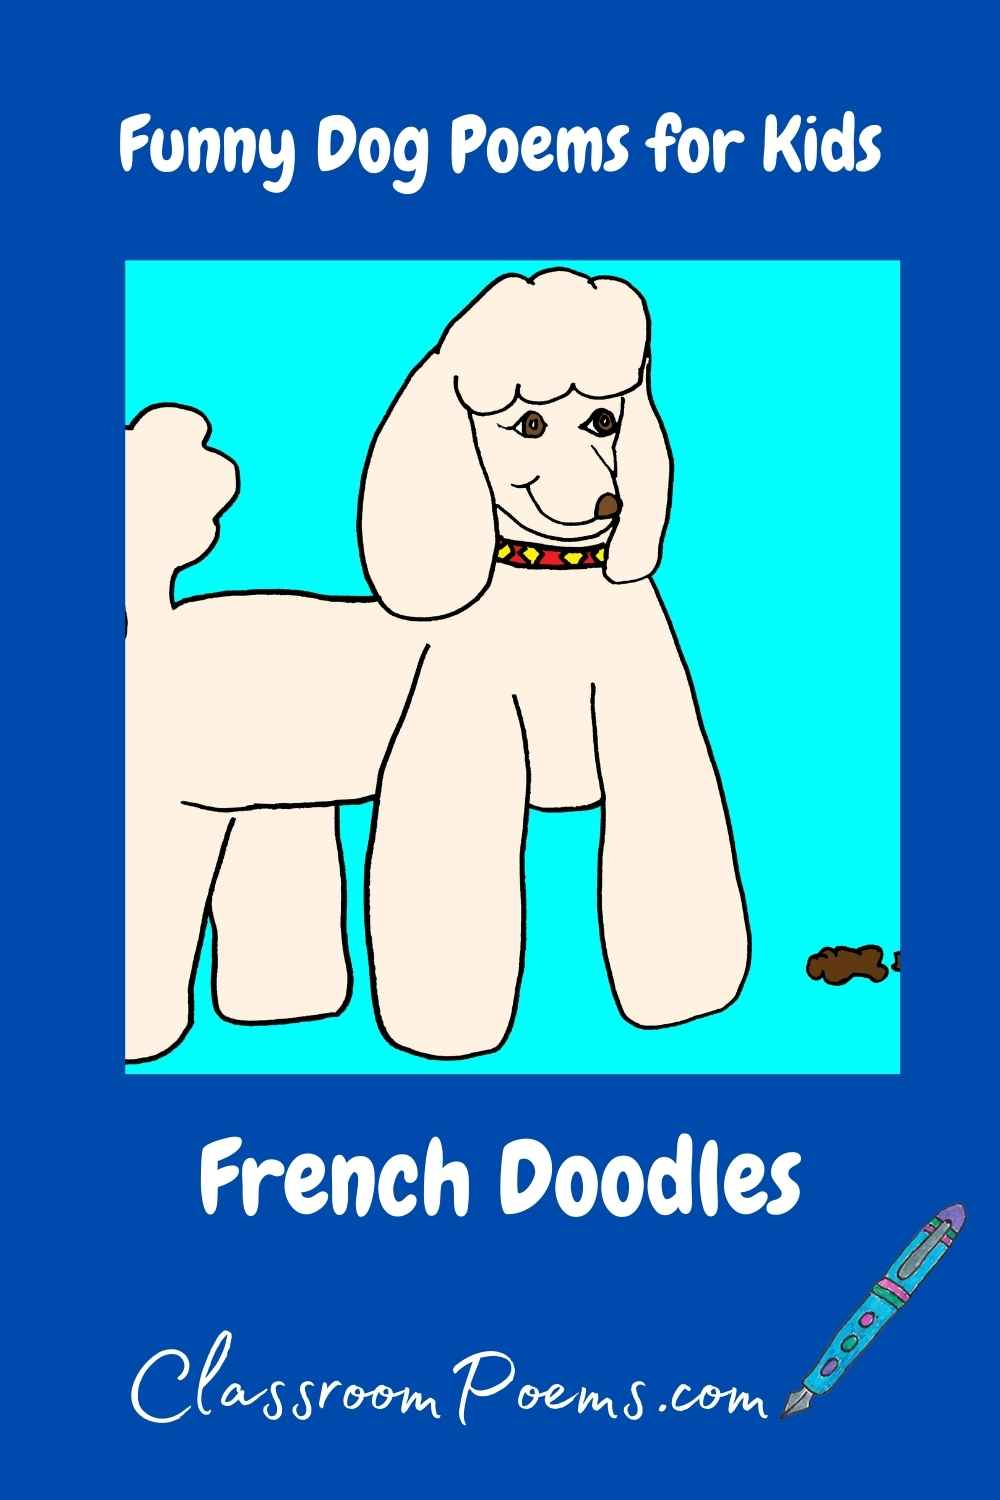 Funny Dog Poems for Kids on ClassroomPoems.com.